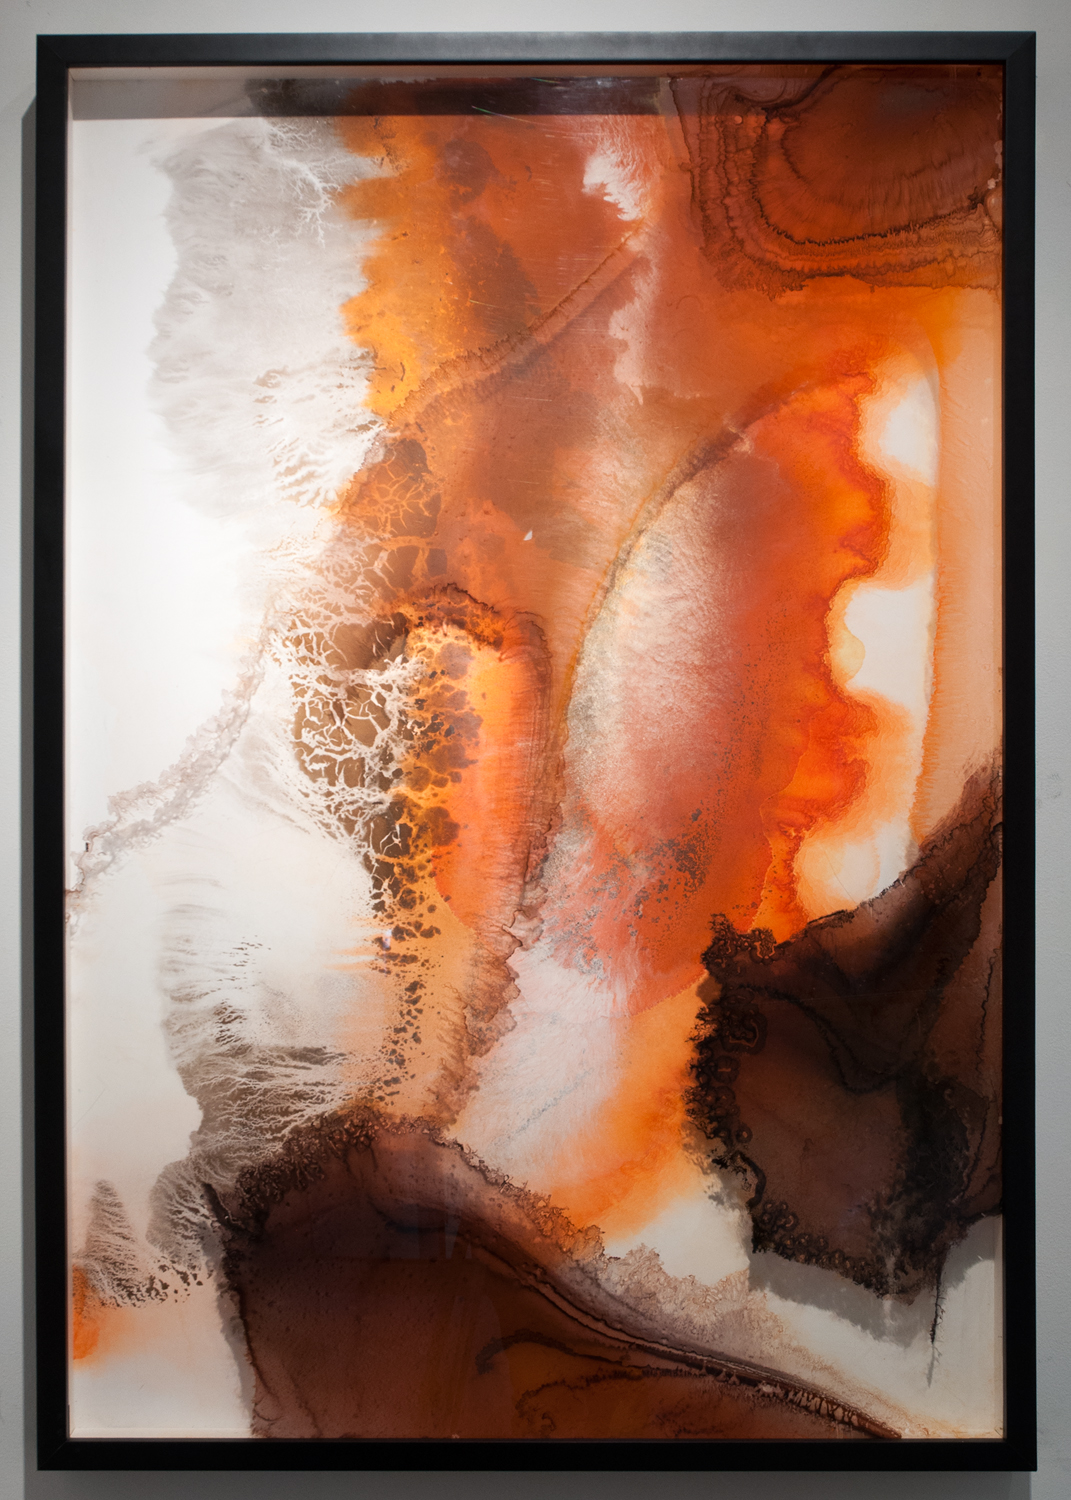 Rhapsody sumi ink and watercolor on glass and gesso panel 48 x 33 inches ERO 080G